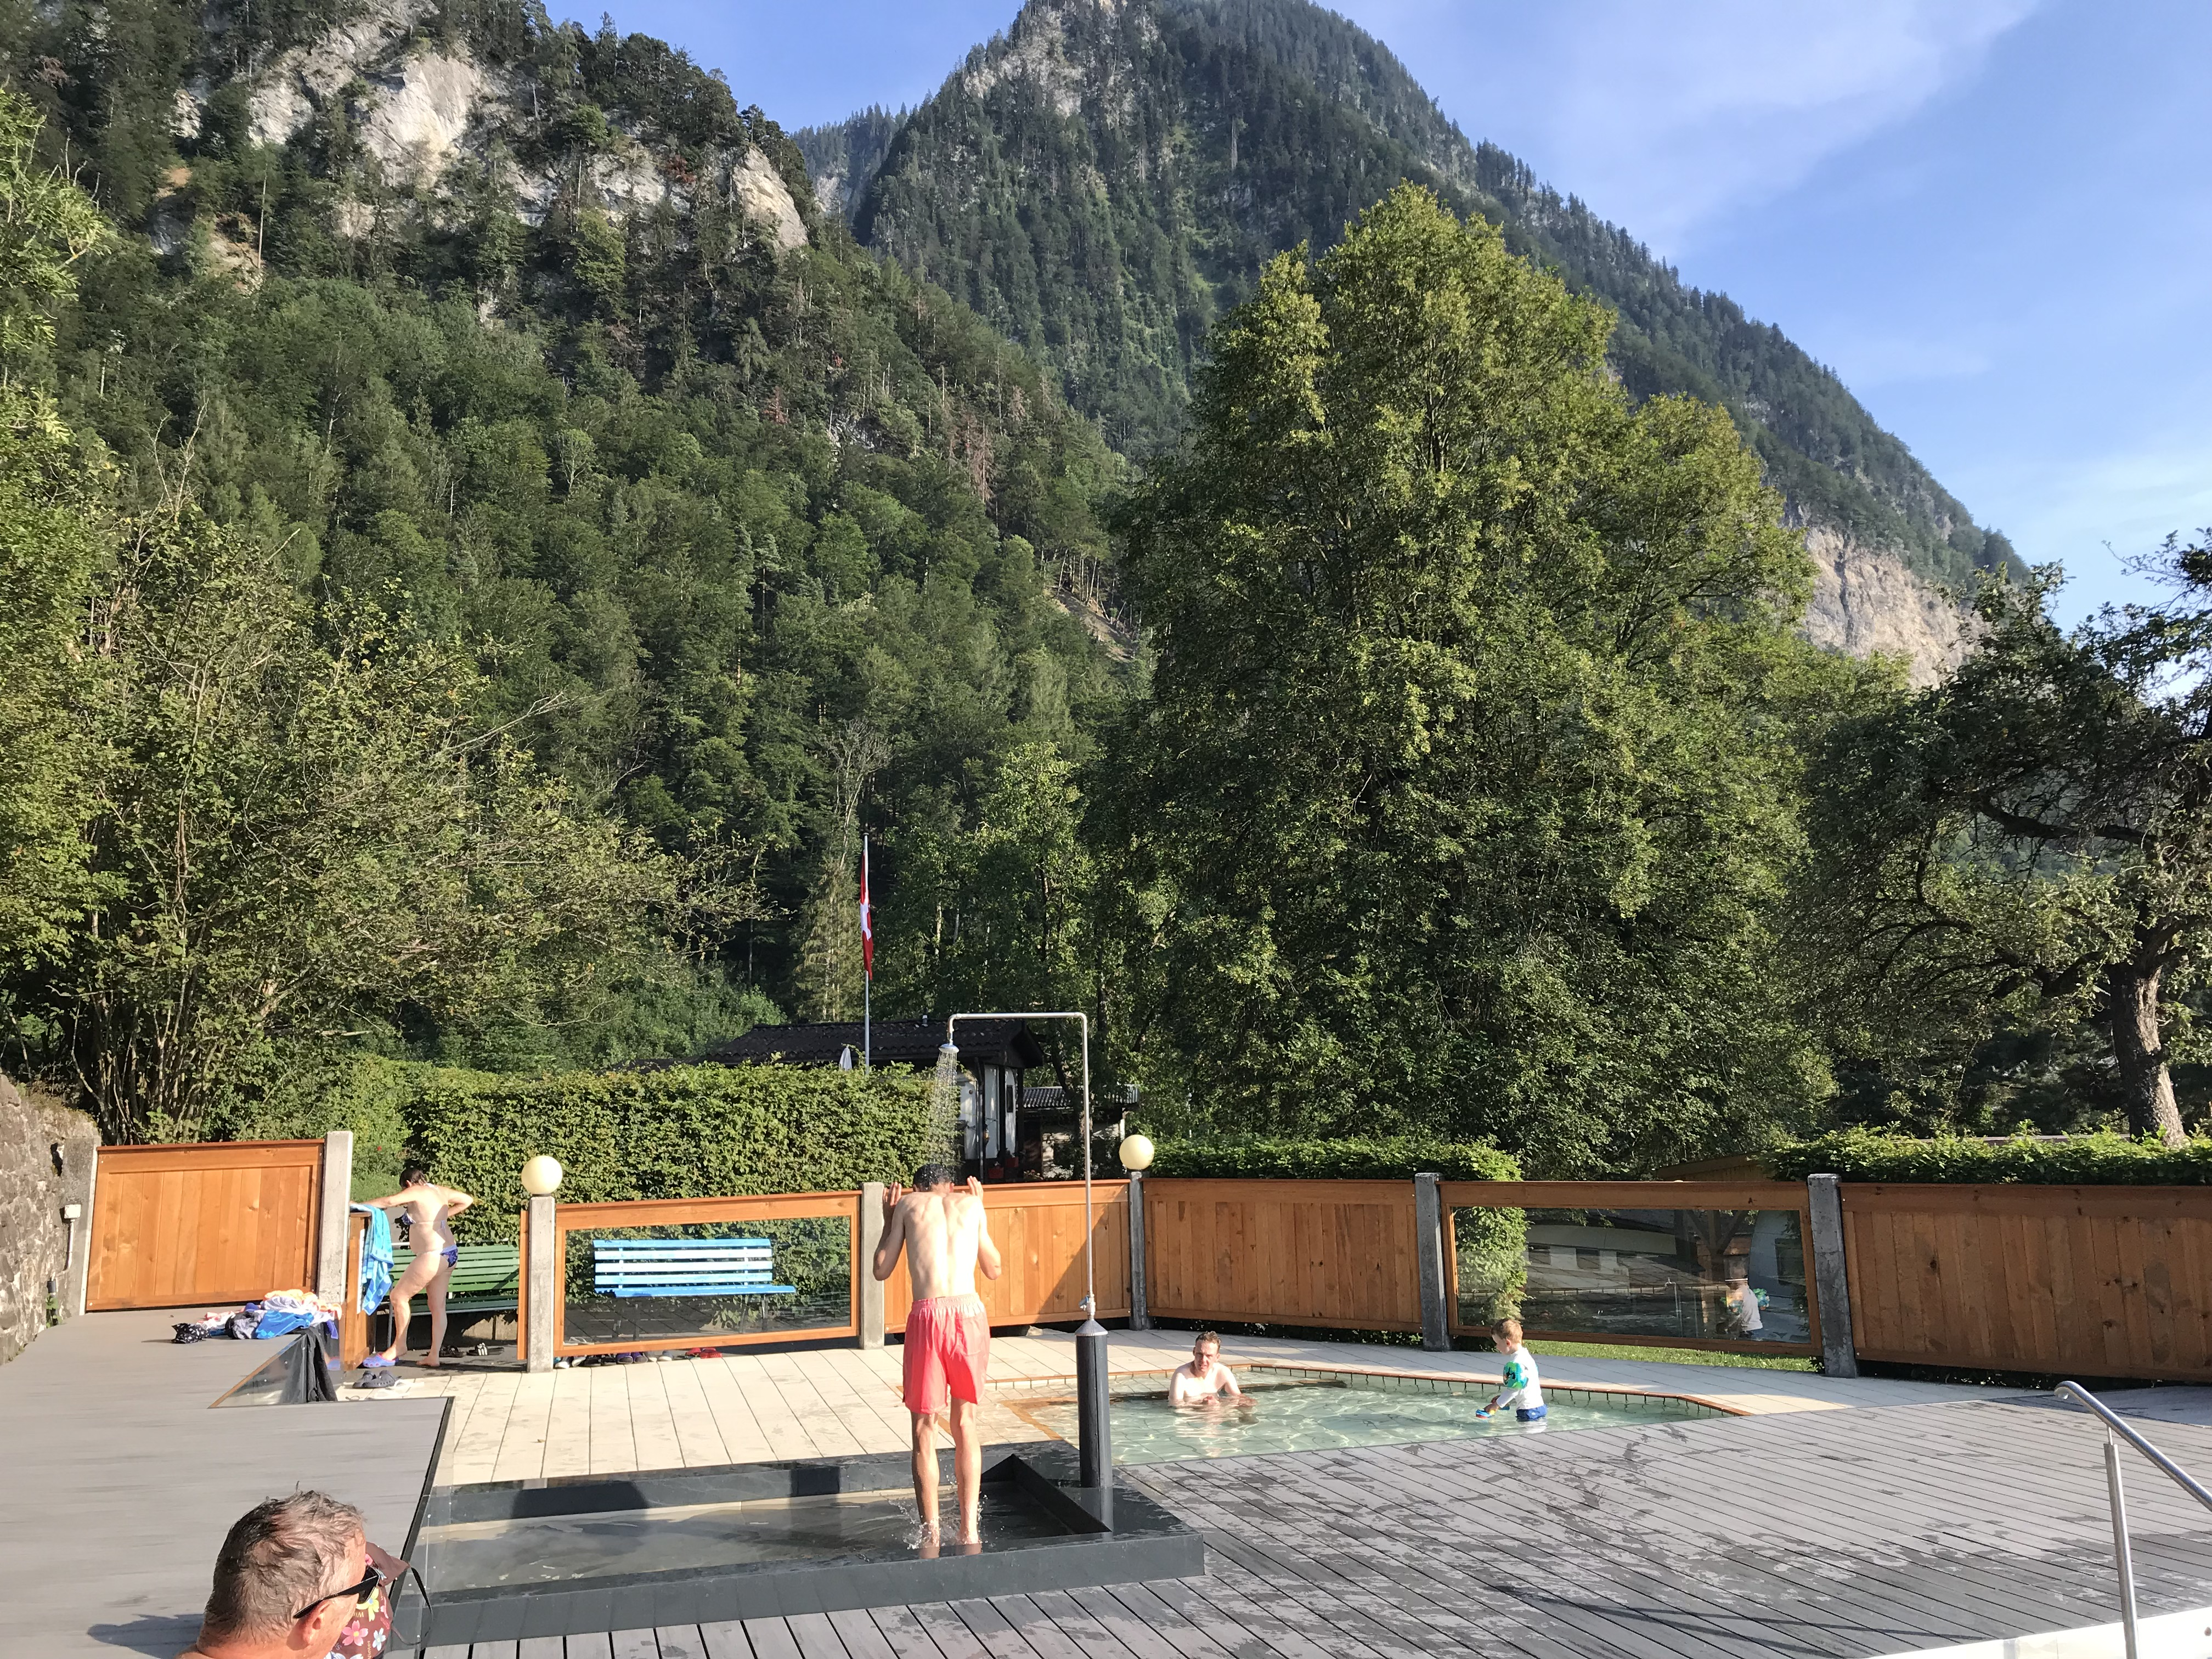 Camping Mittagsspitze AG